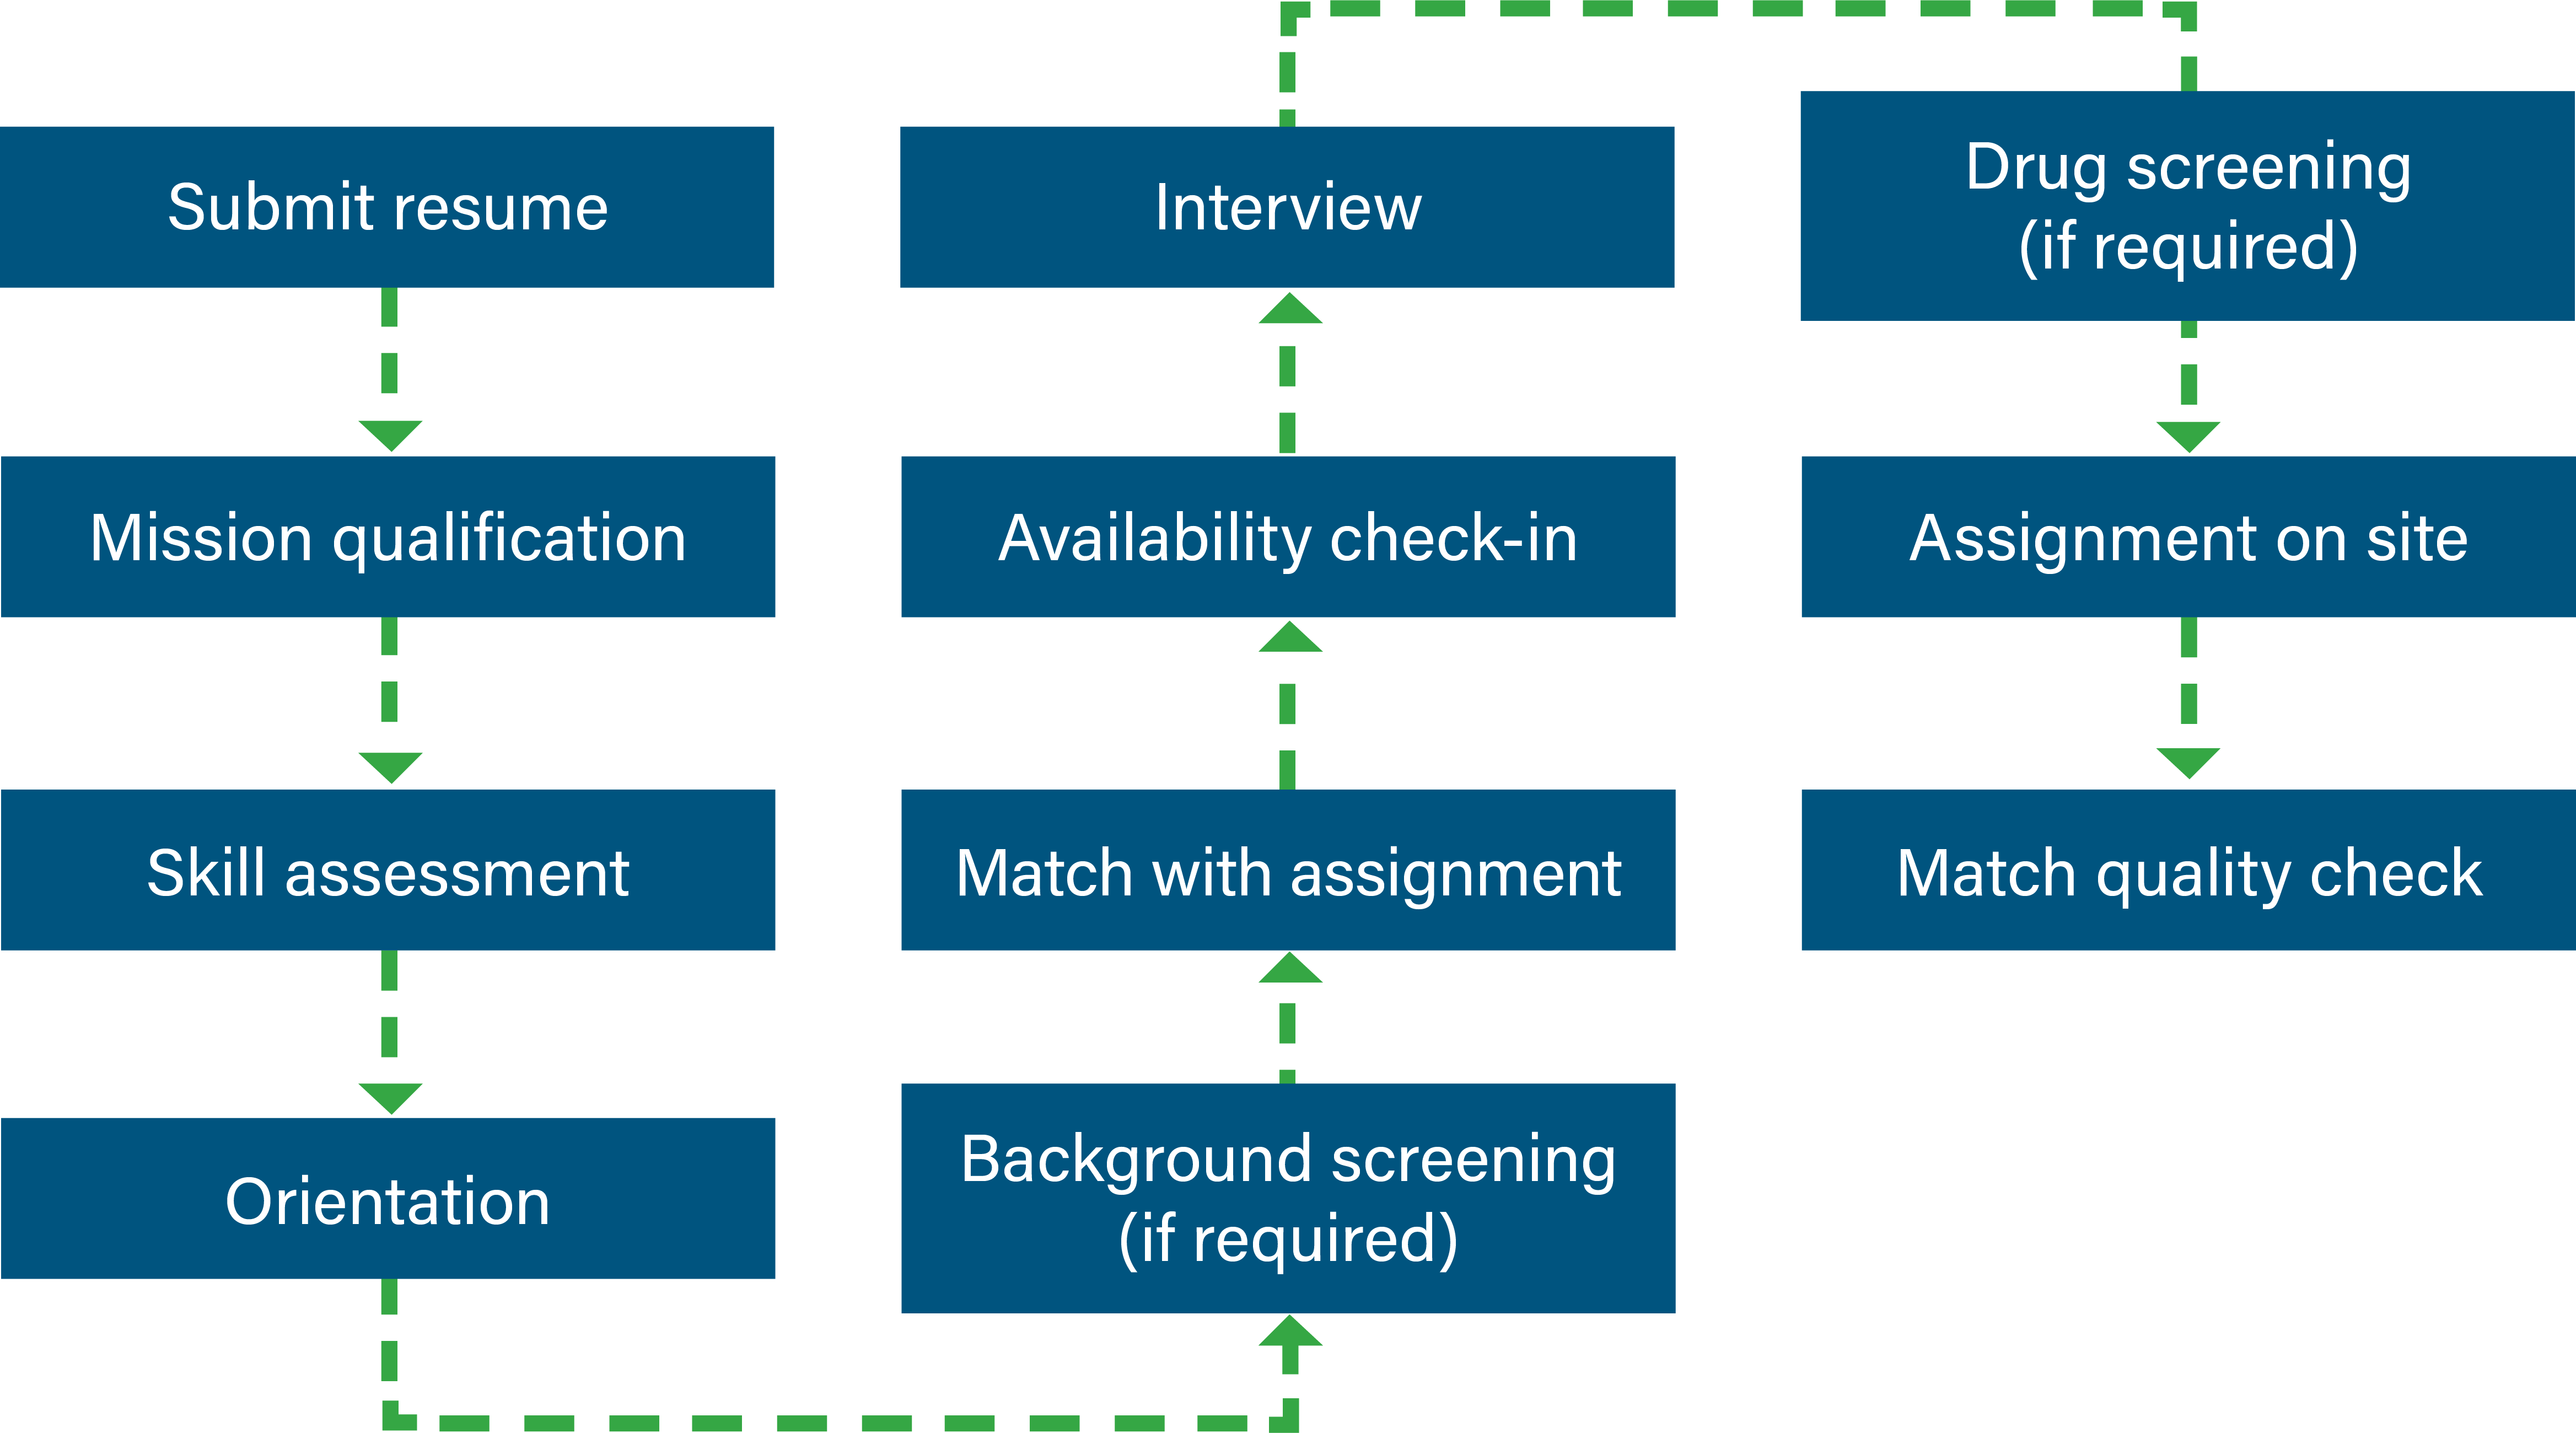 A diagram titled Recruitment Process Steps.  There are eleven steps to the recruitment process. Step 1, submit resume. Step 2, mission qualification. Step 3, skill assessment. Step 4, orientation. Step 5, interview. Step 6, availability check-in. Step 7, match with assignment. Step 8, background screening if required. Step 9, drug screening if required. Step 10, assignment on site. Step 11, match quality check.